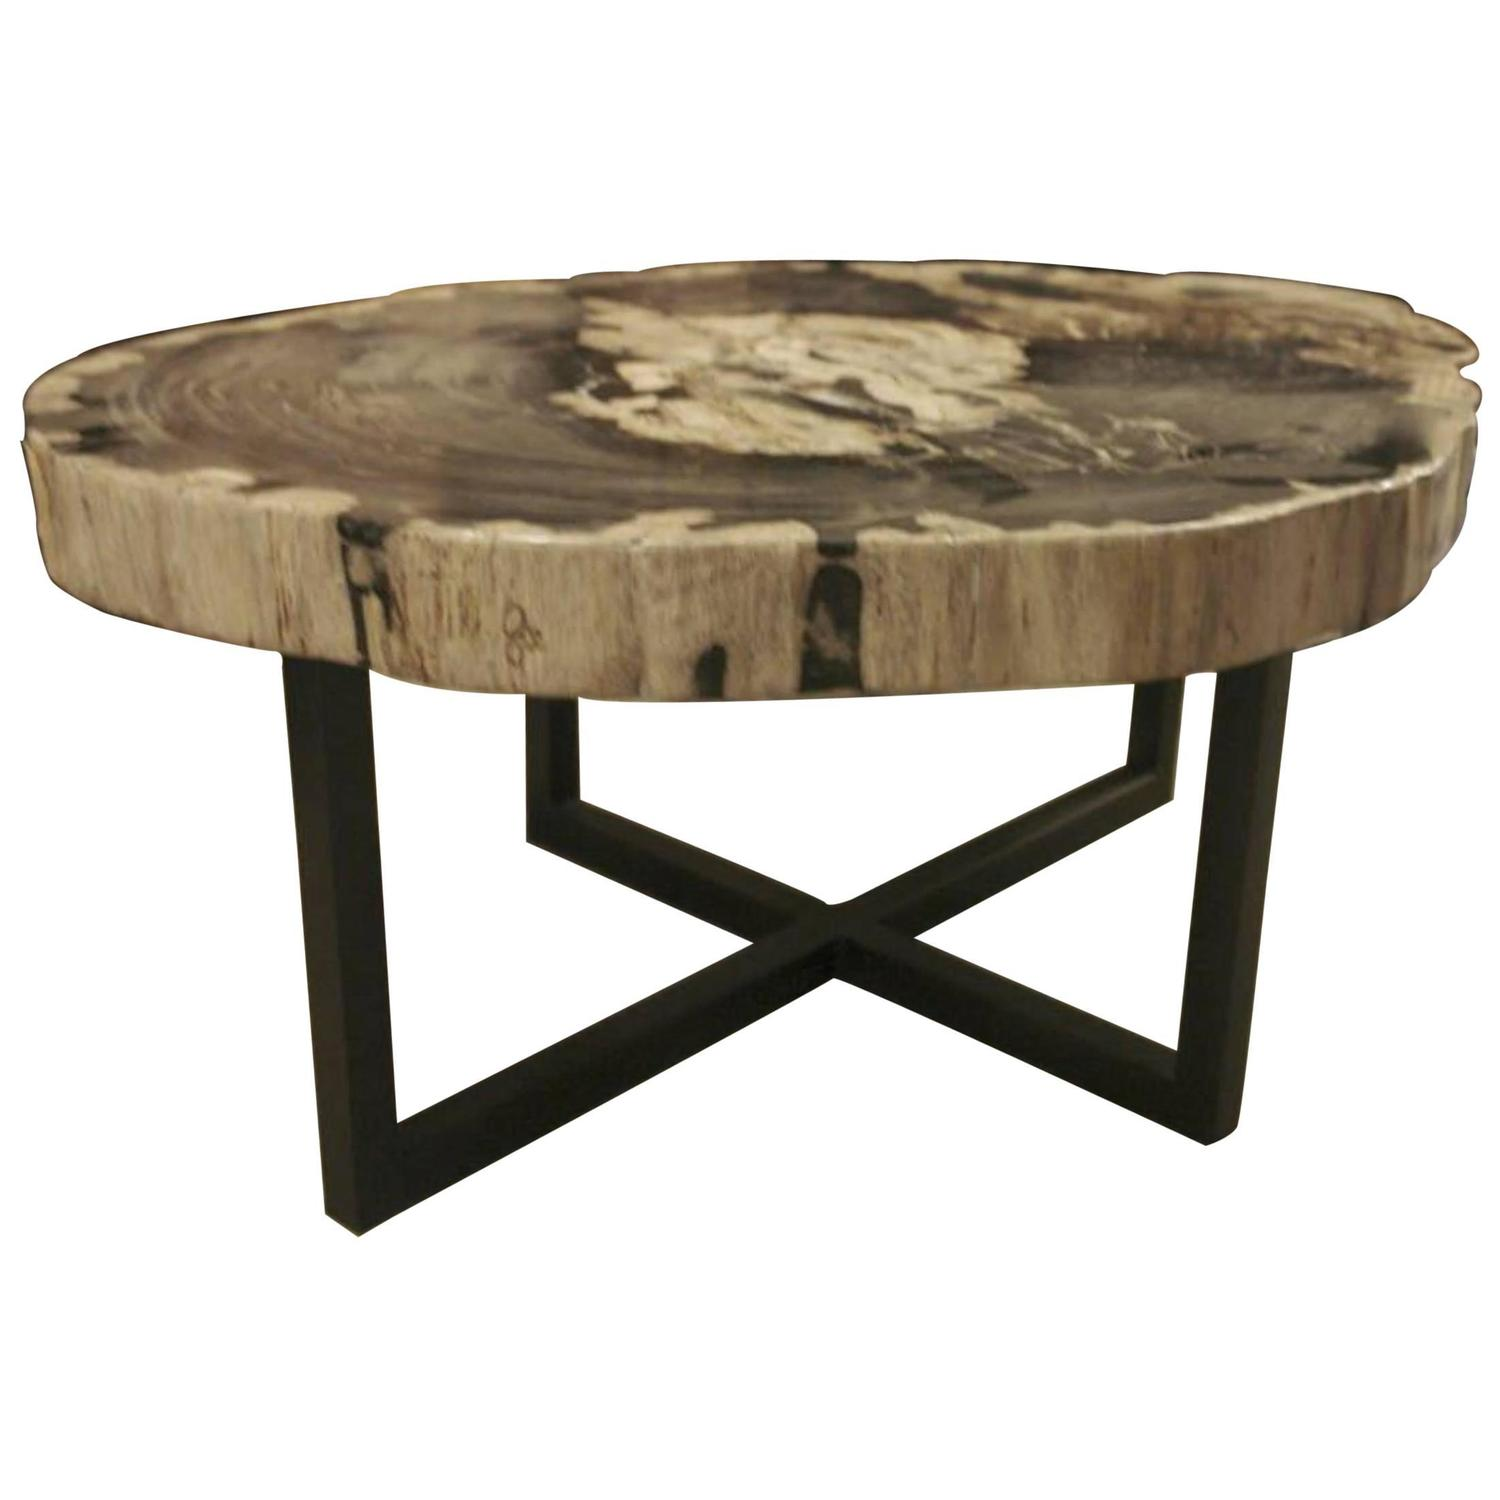 Petrified Wood Extra Large Extra Thick Coffee Table Indonesia Contemporary For Sale At 1stdibs